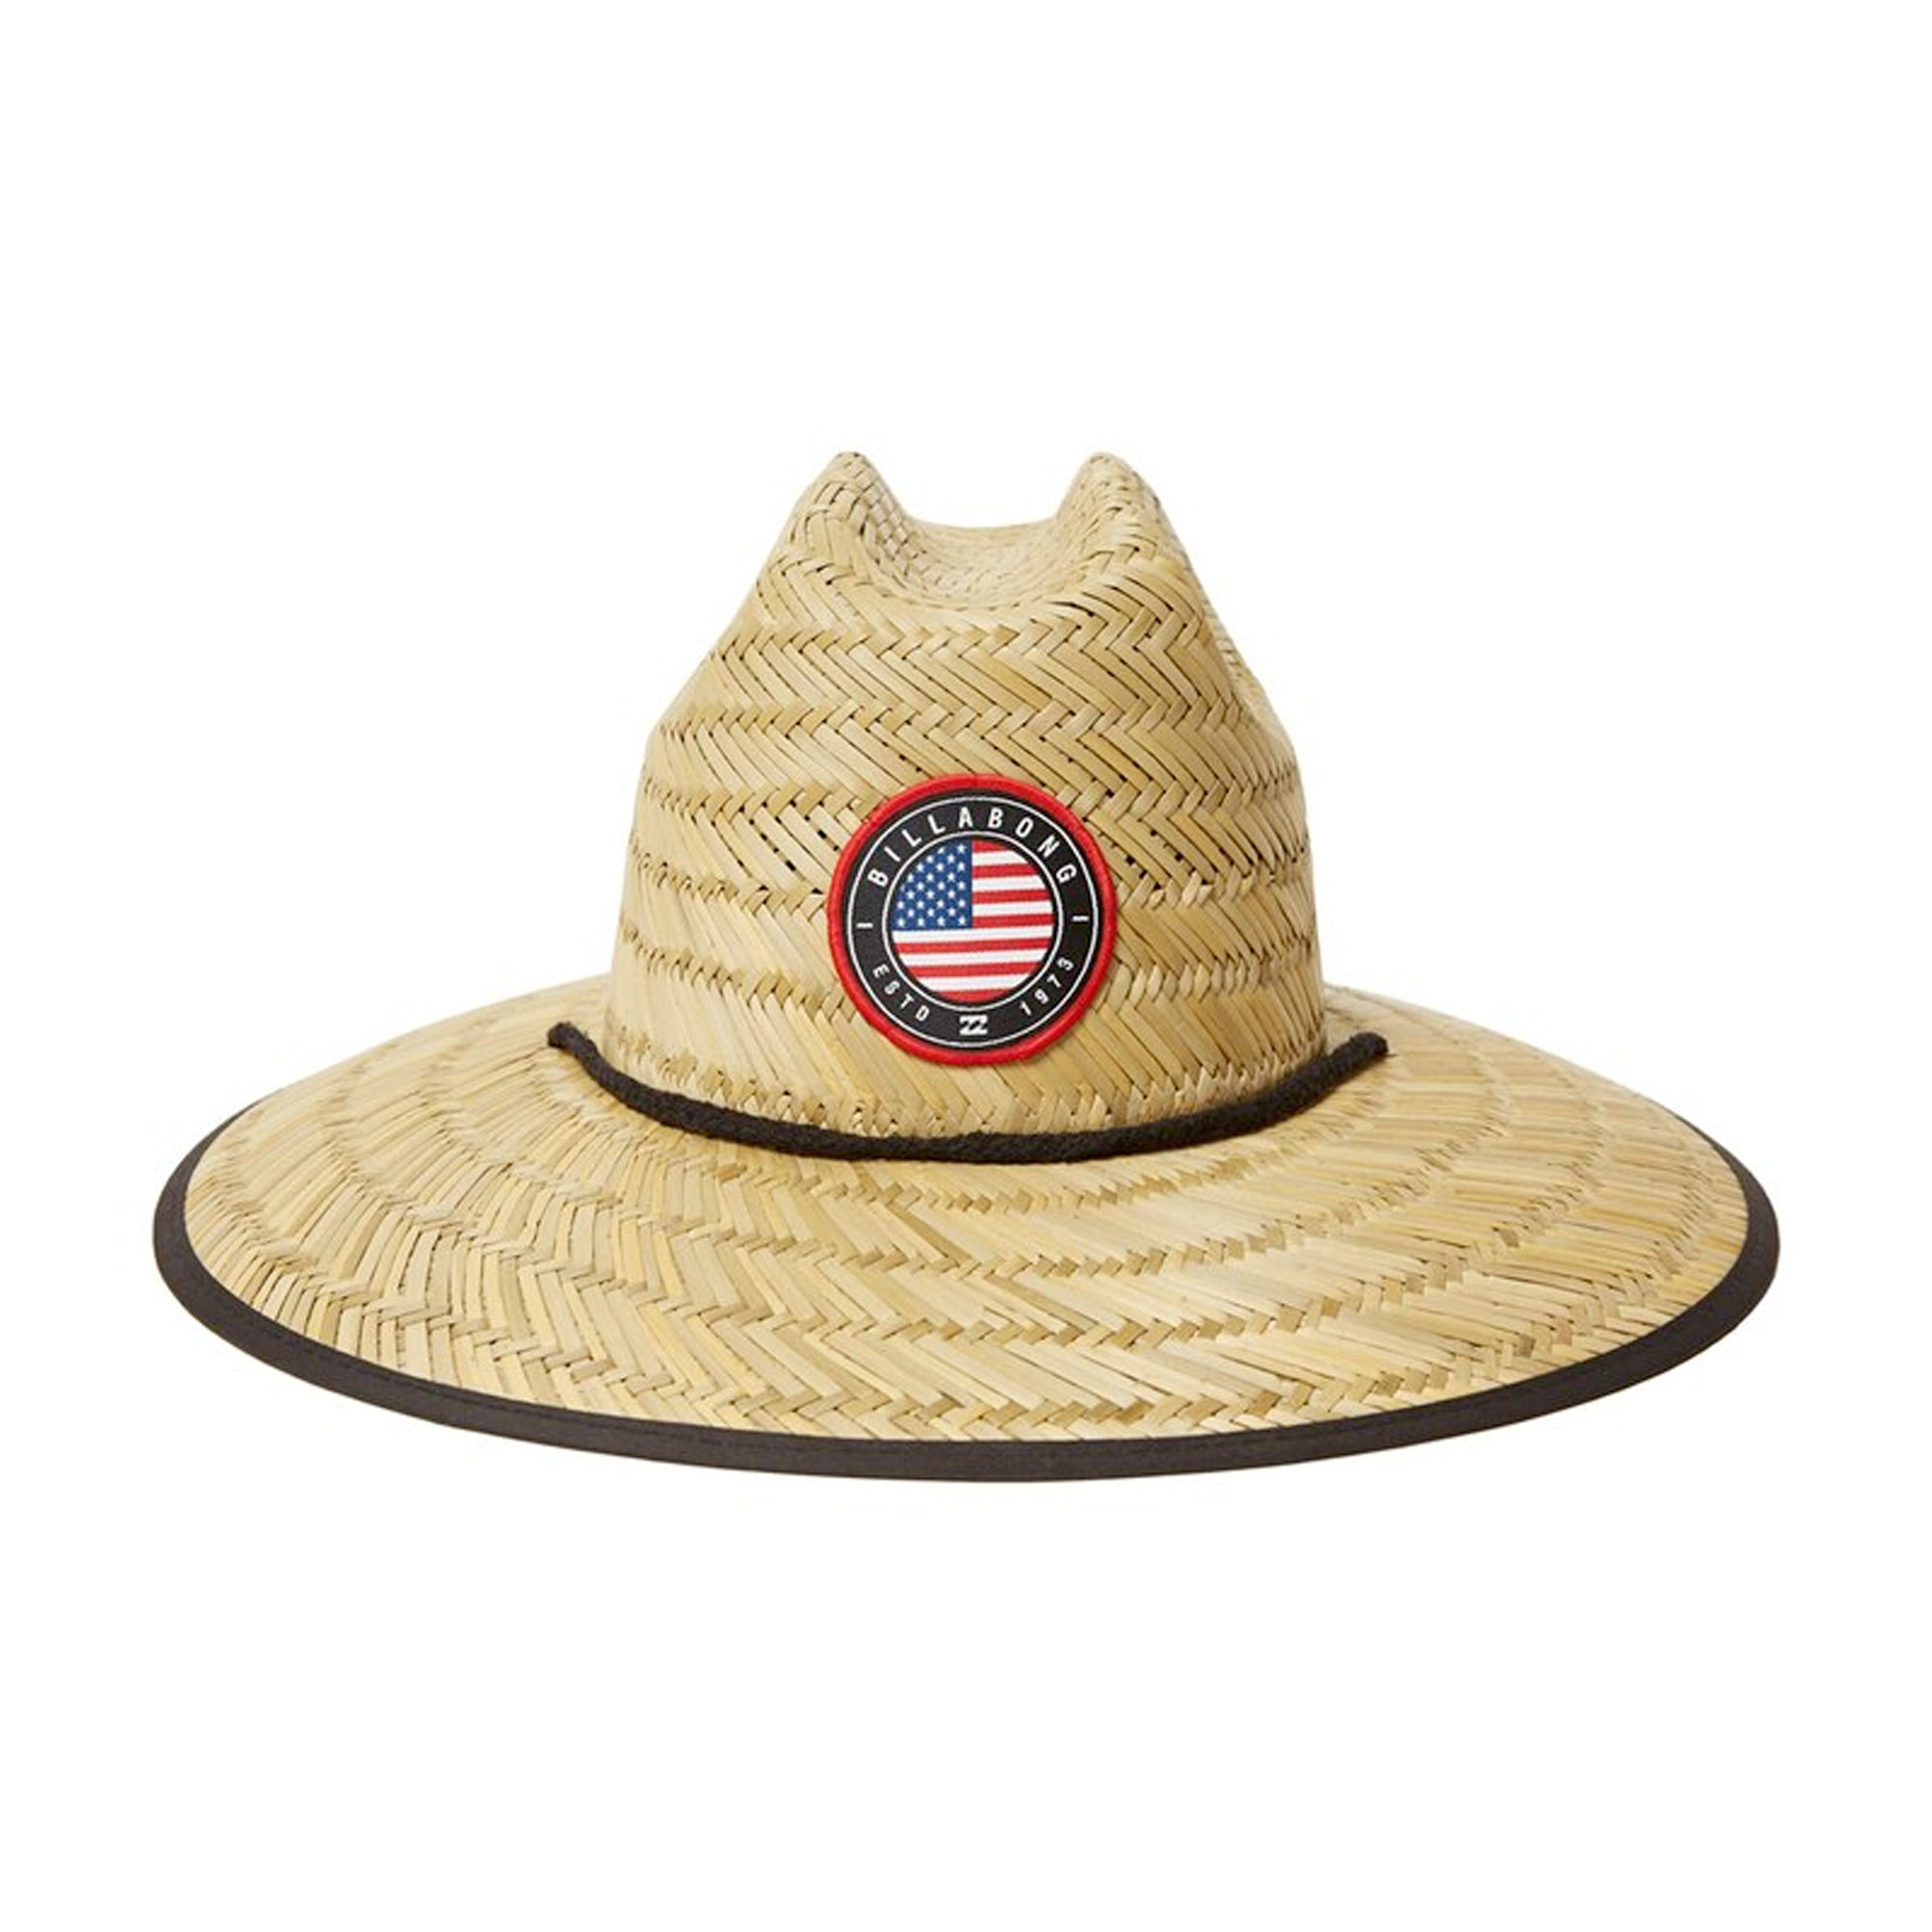 Billabong Native Tides Men's Straw Hat